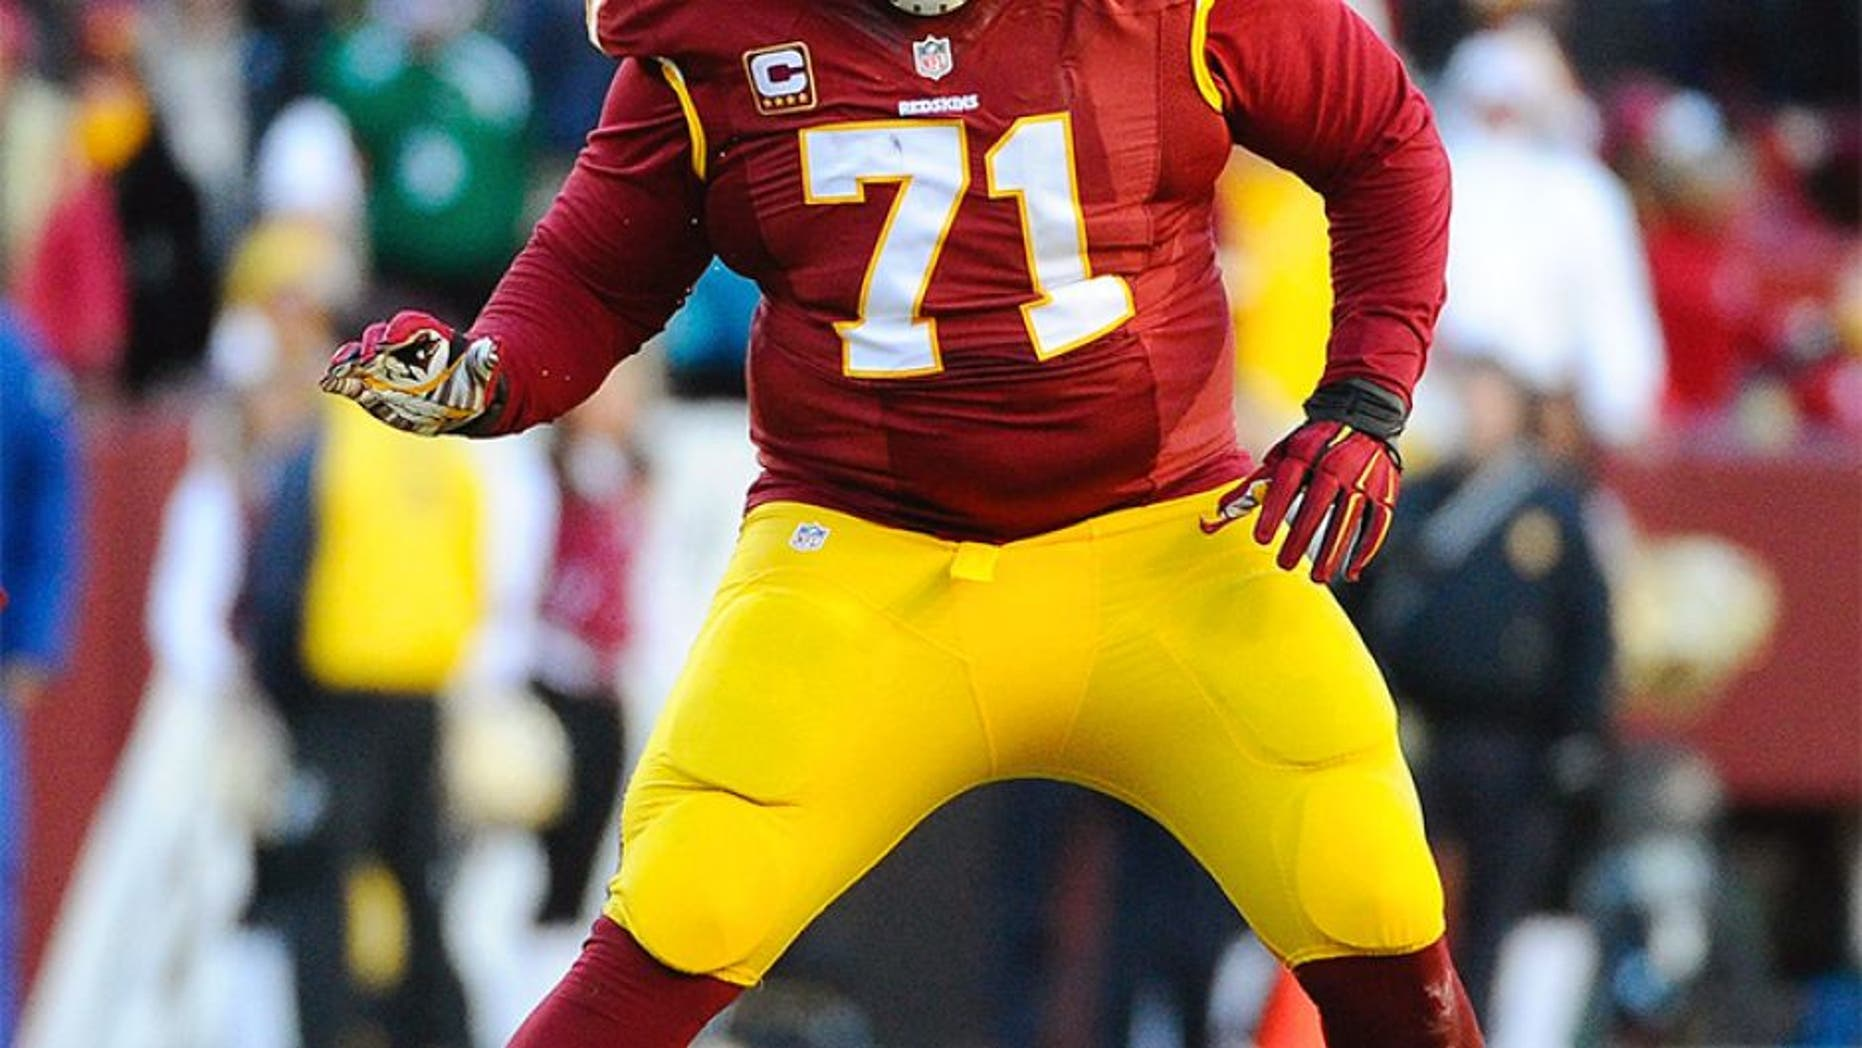 Dec 7, 2014; Landover, MD, USA; Washington Redskins tackle Trent Williams (71) prepares to block against the St. Louis Rams during the second half at FedEx Field. Mandatory Credit: Brad Mills-USA TODAY Sports